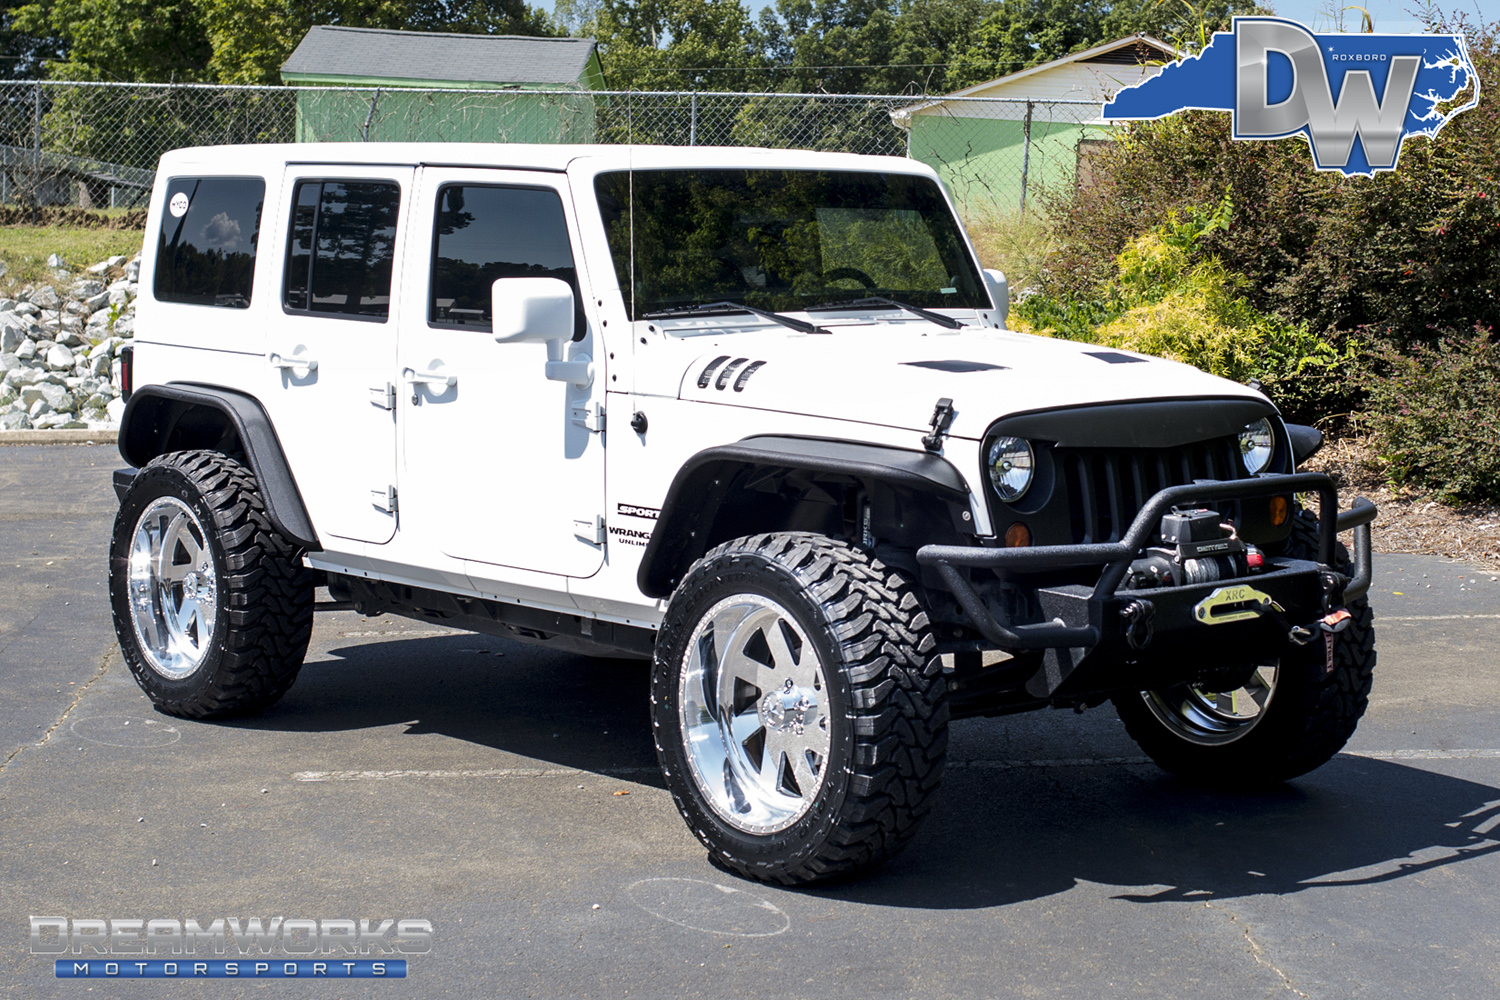 hight resolution of jeep wrangler american force wheels dreamworks motorsports 1